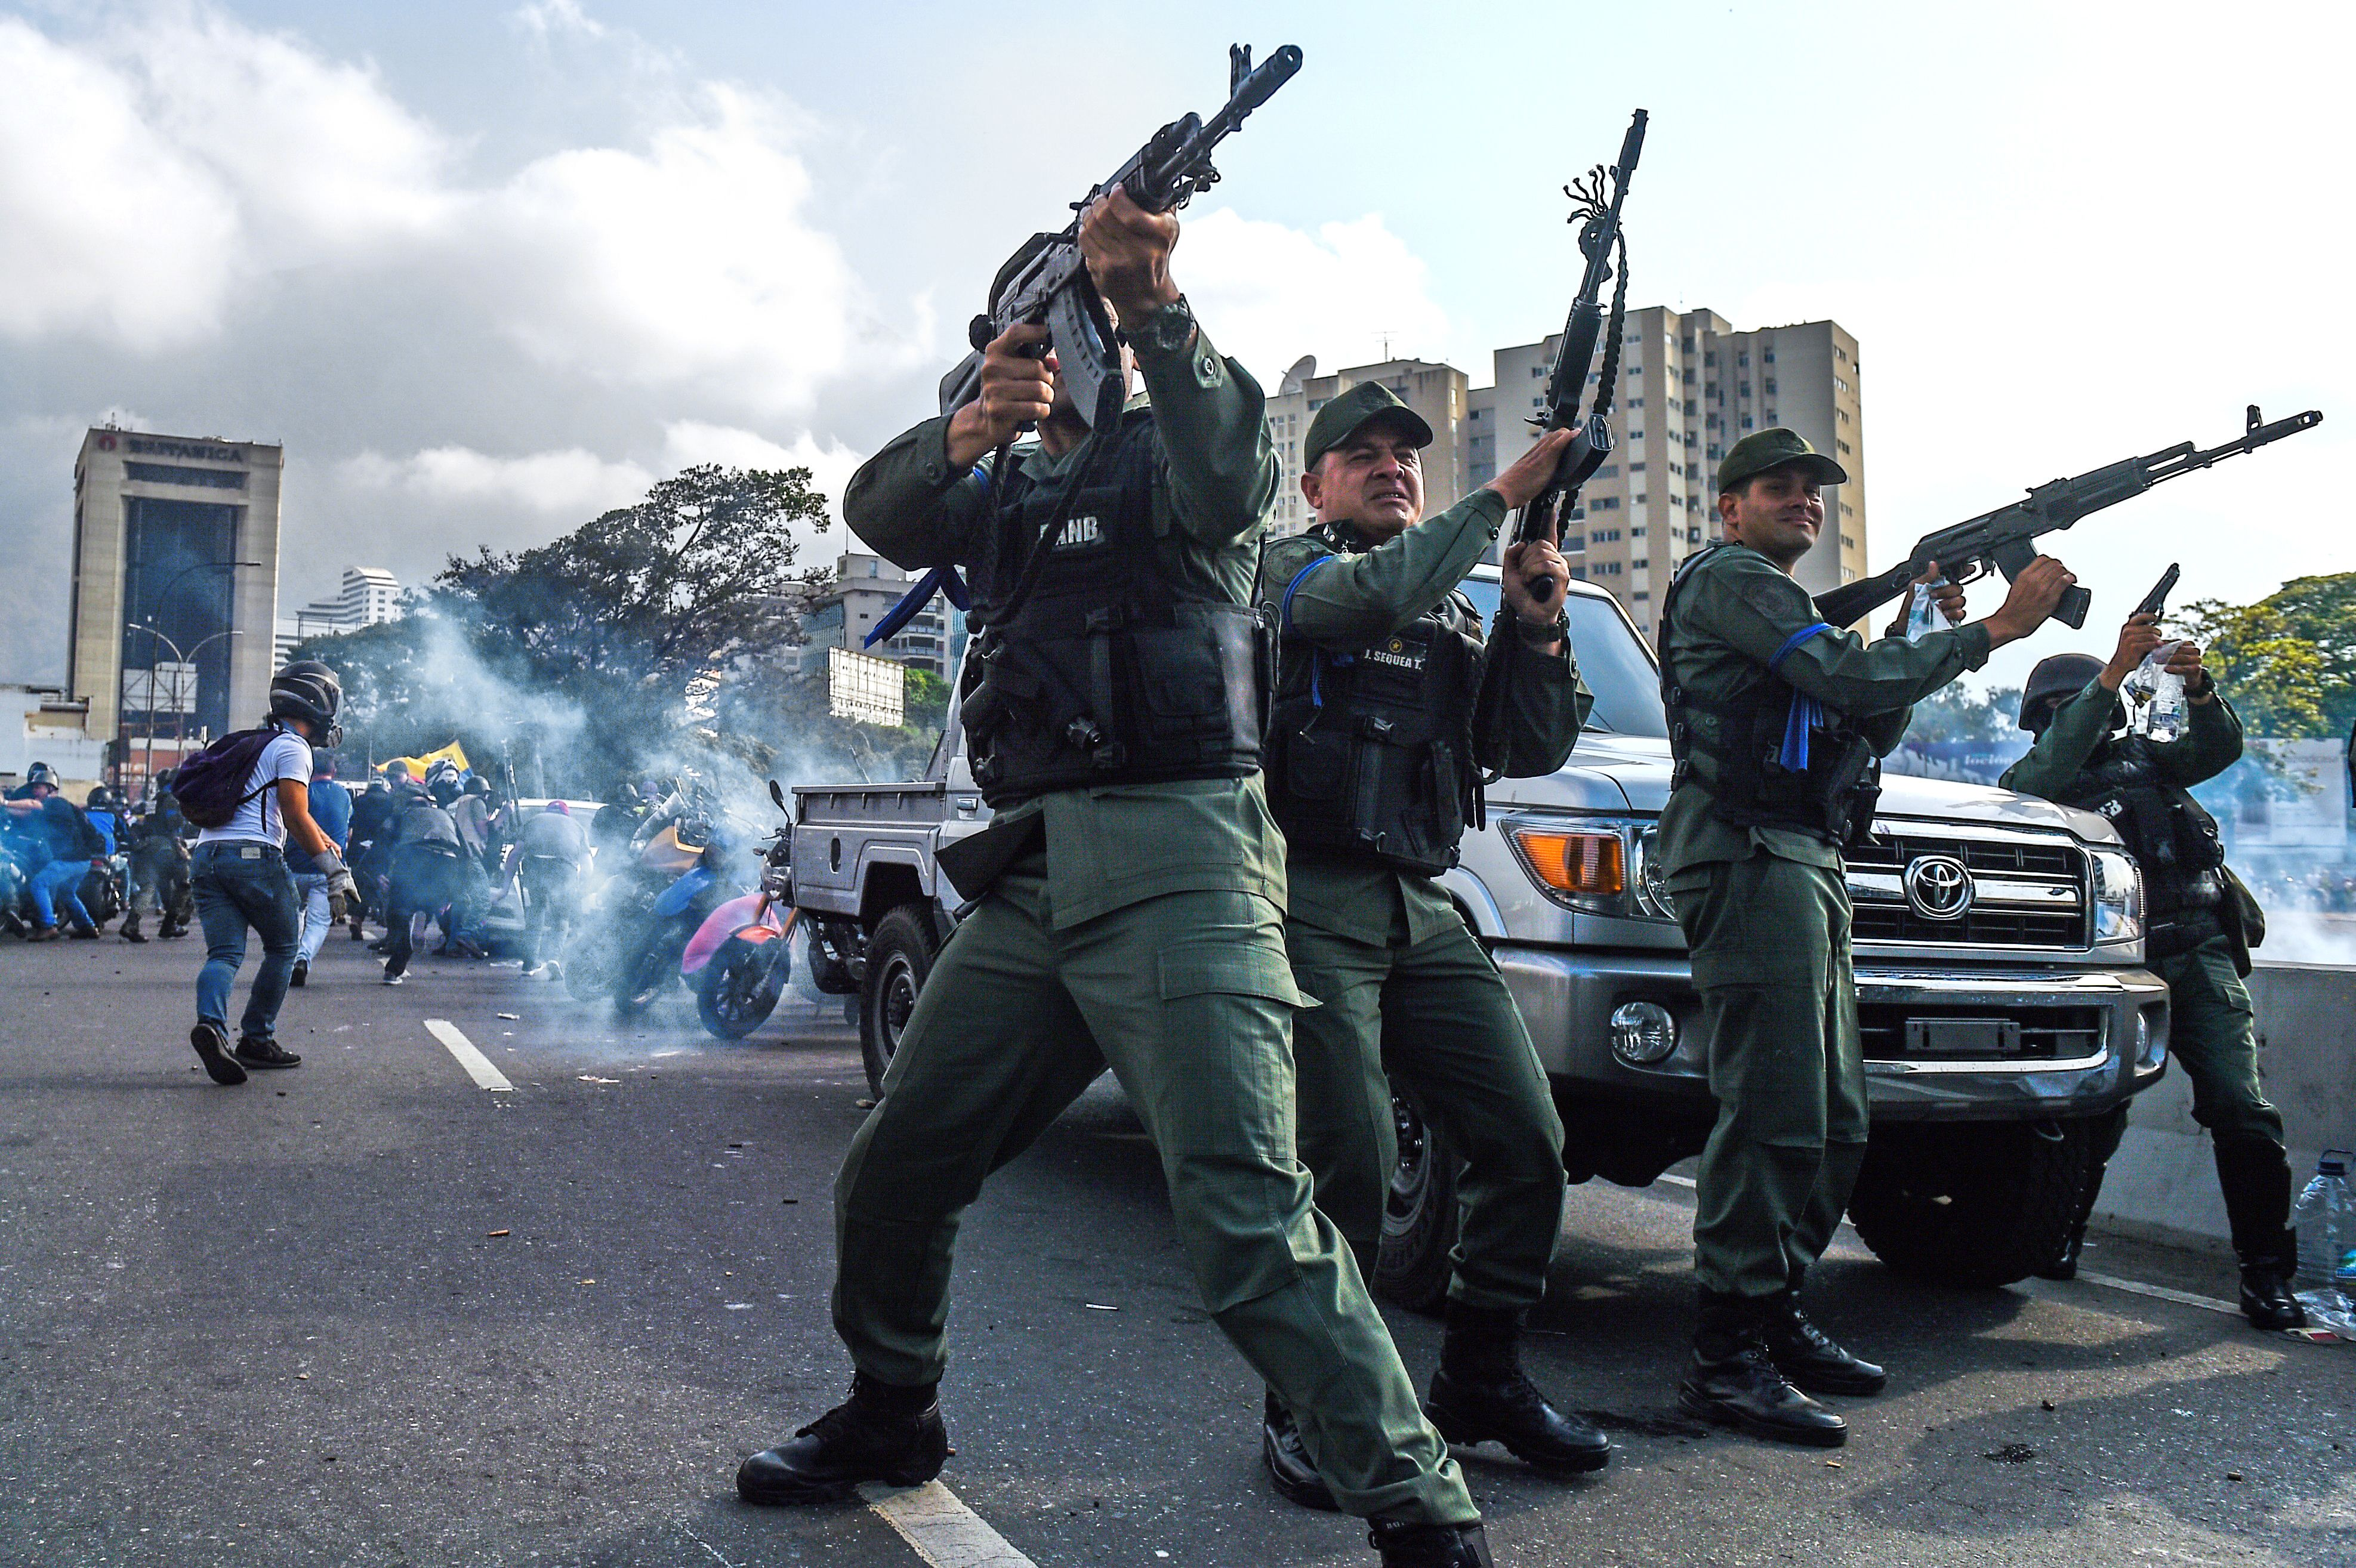 "Members of the Bolivarian National Guard who joined Venezuelan opposition leader and self-proclaimed acting president Juan Guaido fire into the air to repel forces loyal to President Nicolas Maduro who arrived to disperse a demonstration near La Carlota military base in Caracas on April 30, 2019. - Guaido -- accused by the government of attempting a coup Tuesday -- said there was ""no turning back"" in his attempt to oust President Nicolas Maduro from power. (Photo by FEDERICO PARRA/AFP/Getty Images)"